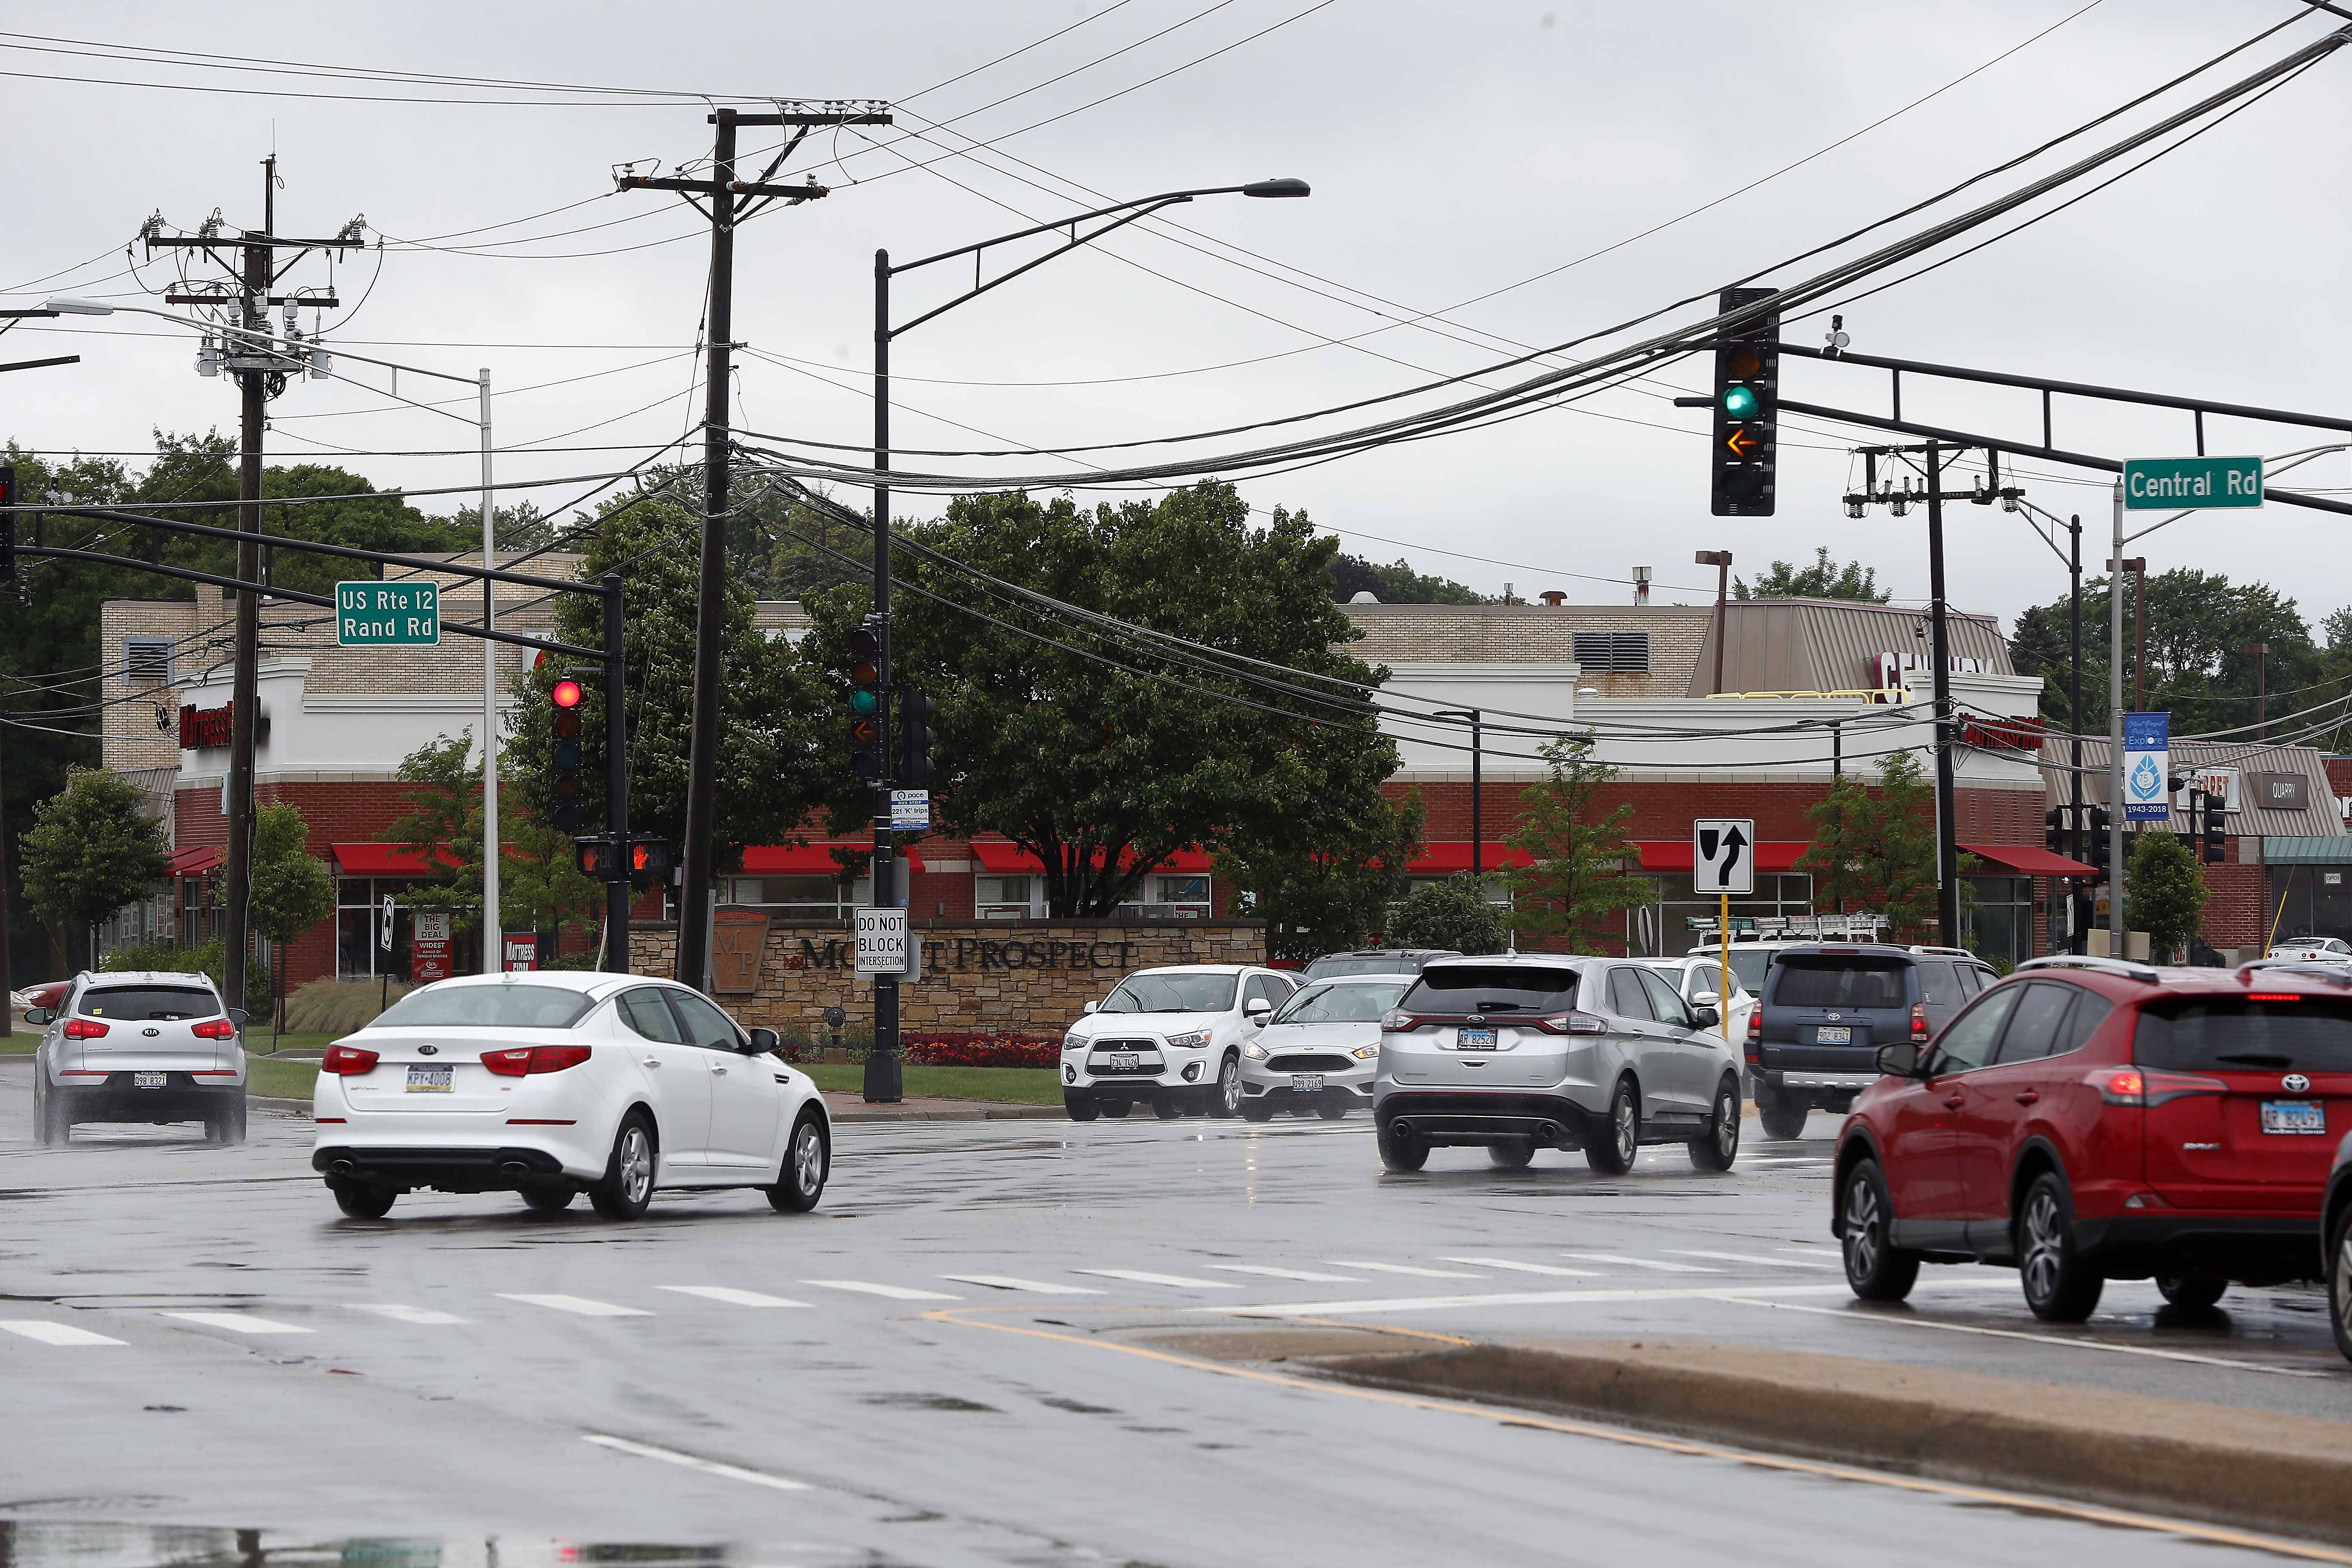 Drivers using this intersection at Rand and Central roads in Mount Prospect should brace for delays during resurfacing a roughly 3-mile stretch of Central Road from Arlington Heights Road to Rand Road. Construction crews will start on both ends and work their way toward the middle.